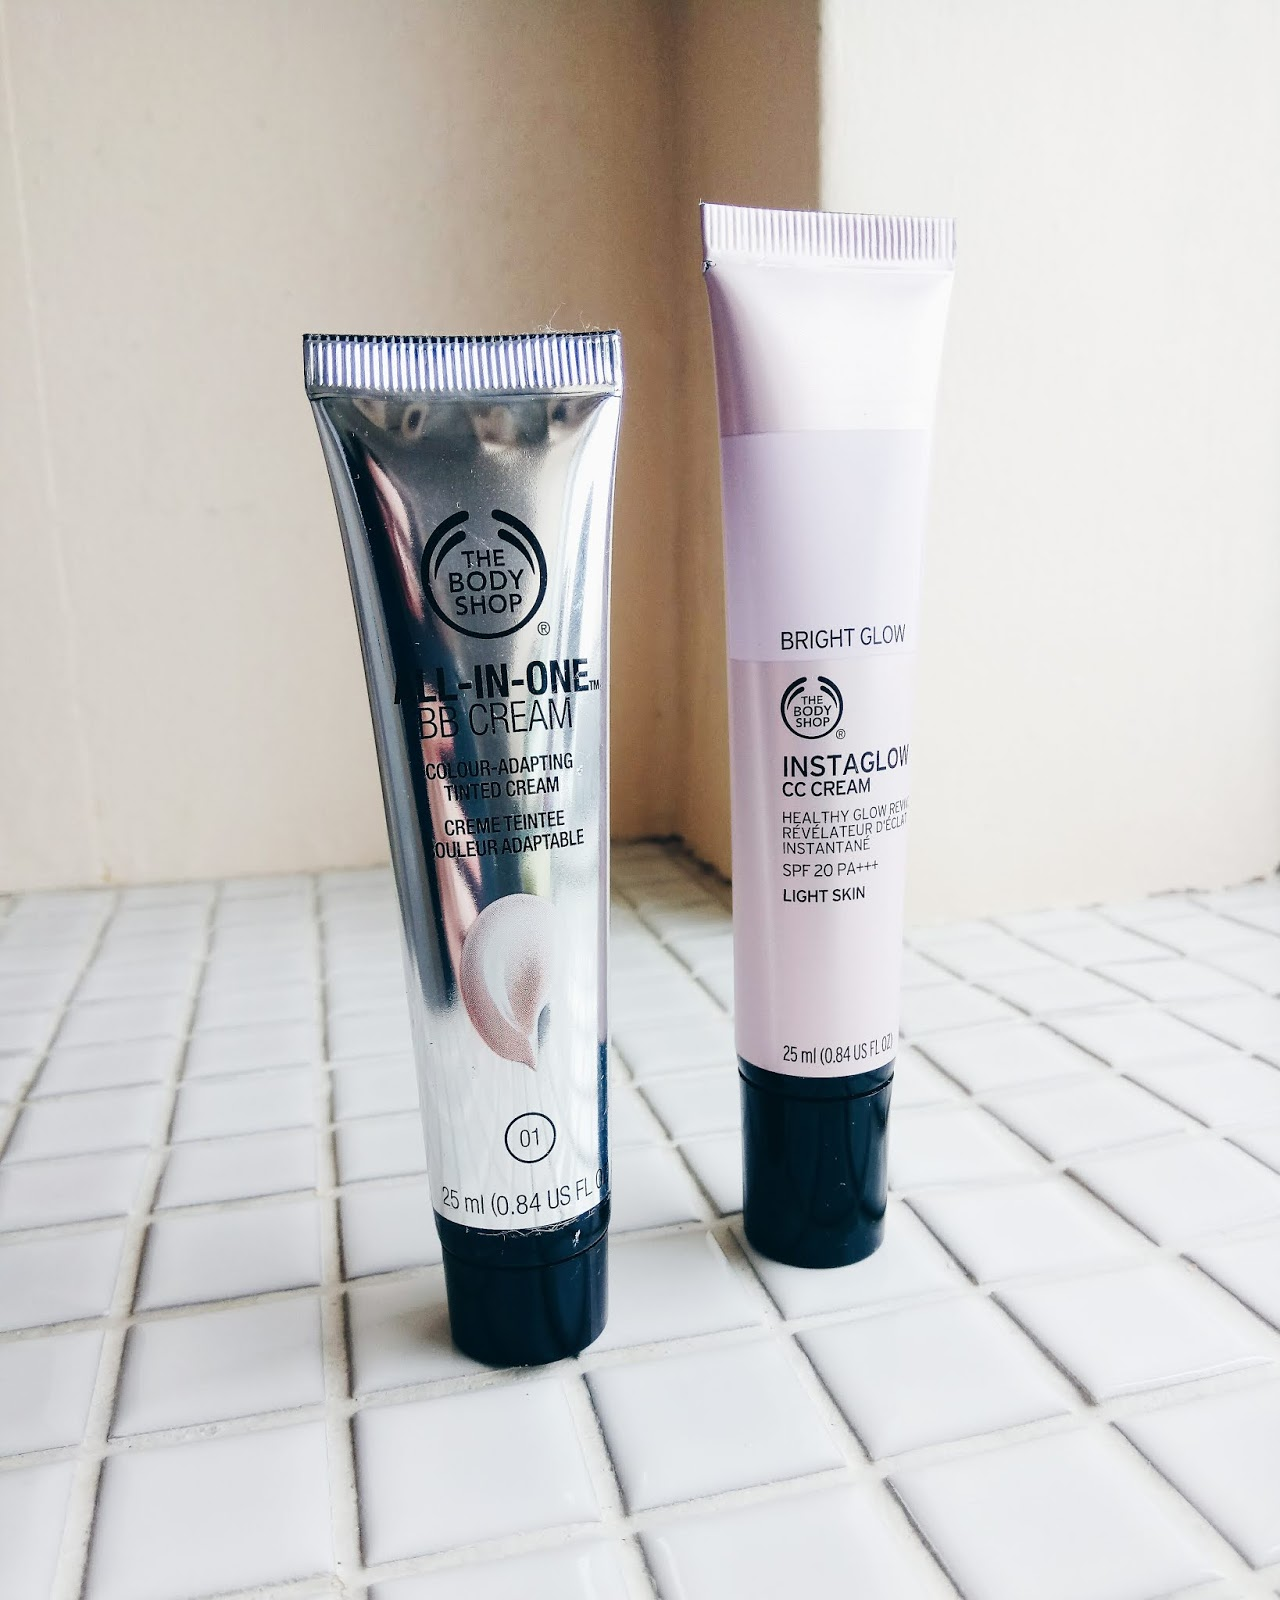 The Body Shop base products